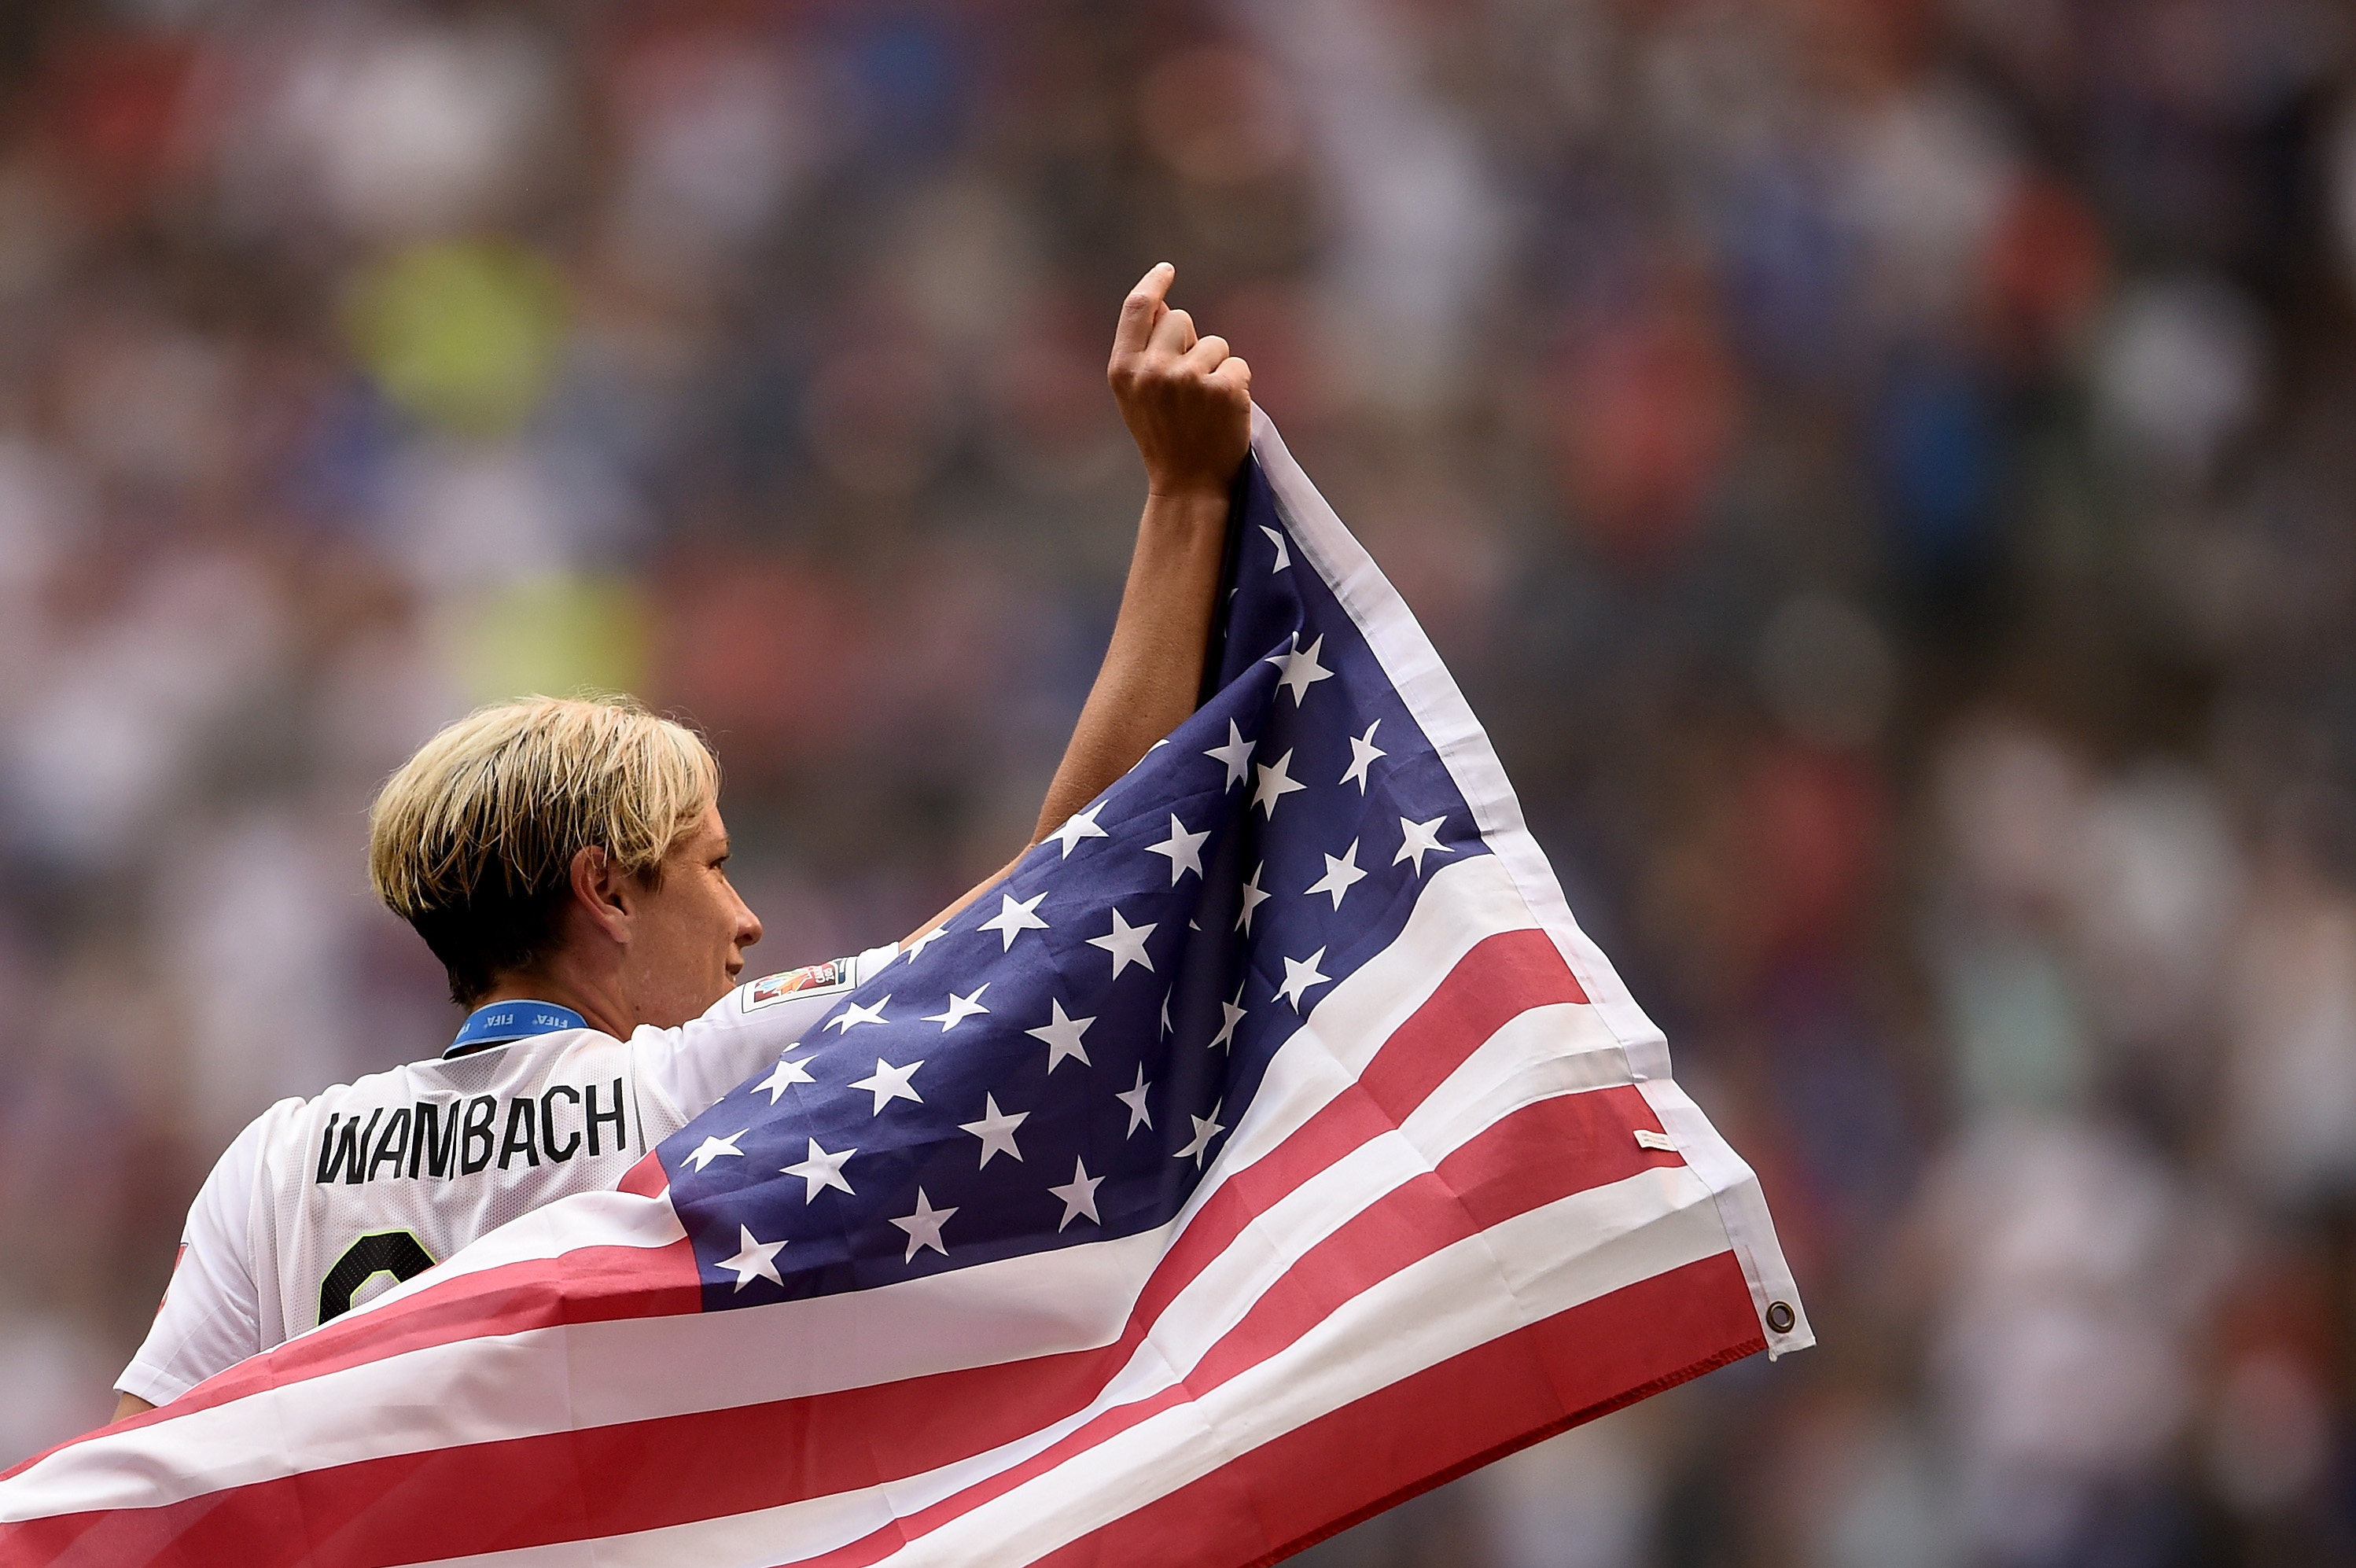 Abby Wambach of the U.S. celebrates after their 5-2 win over Japan in the FIFA Women's World Cup 2015 Final at BC Place Stadium in Vancouver on July 5, 2015.